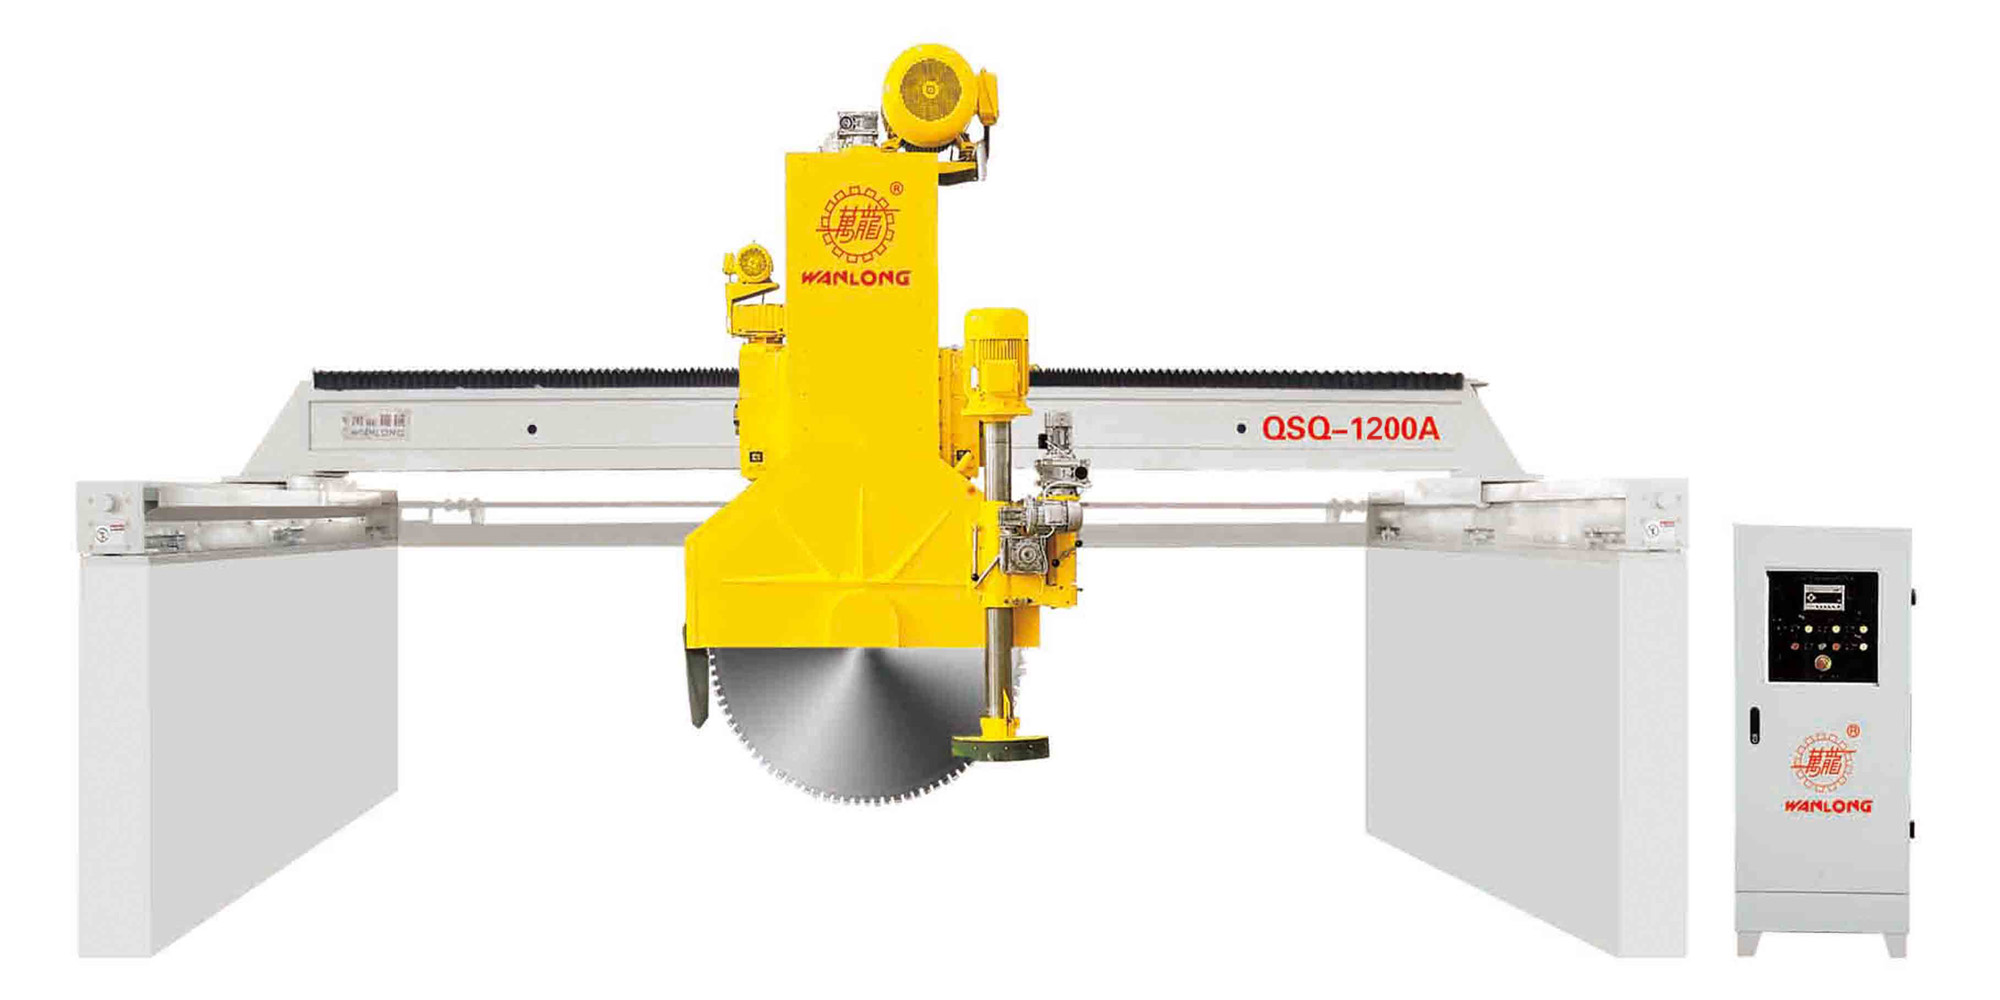 QSQ-1200A/1600A Vertical Plus Horizontal Cutting Machine